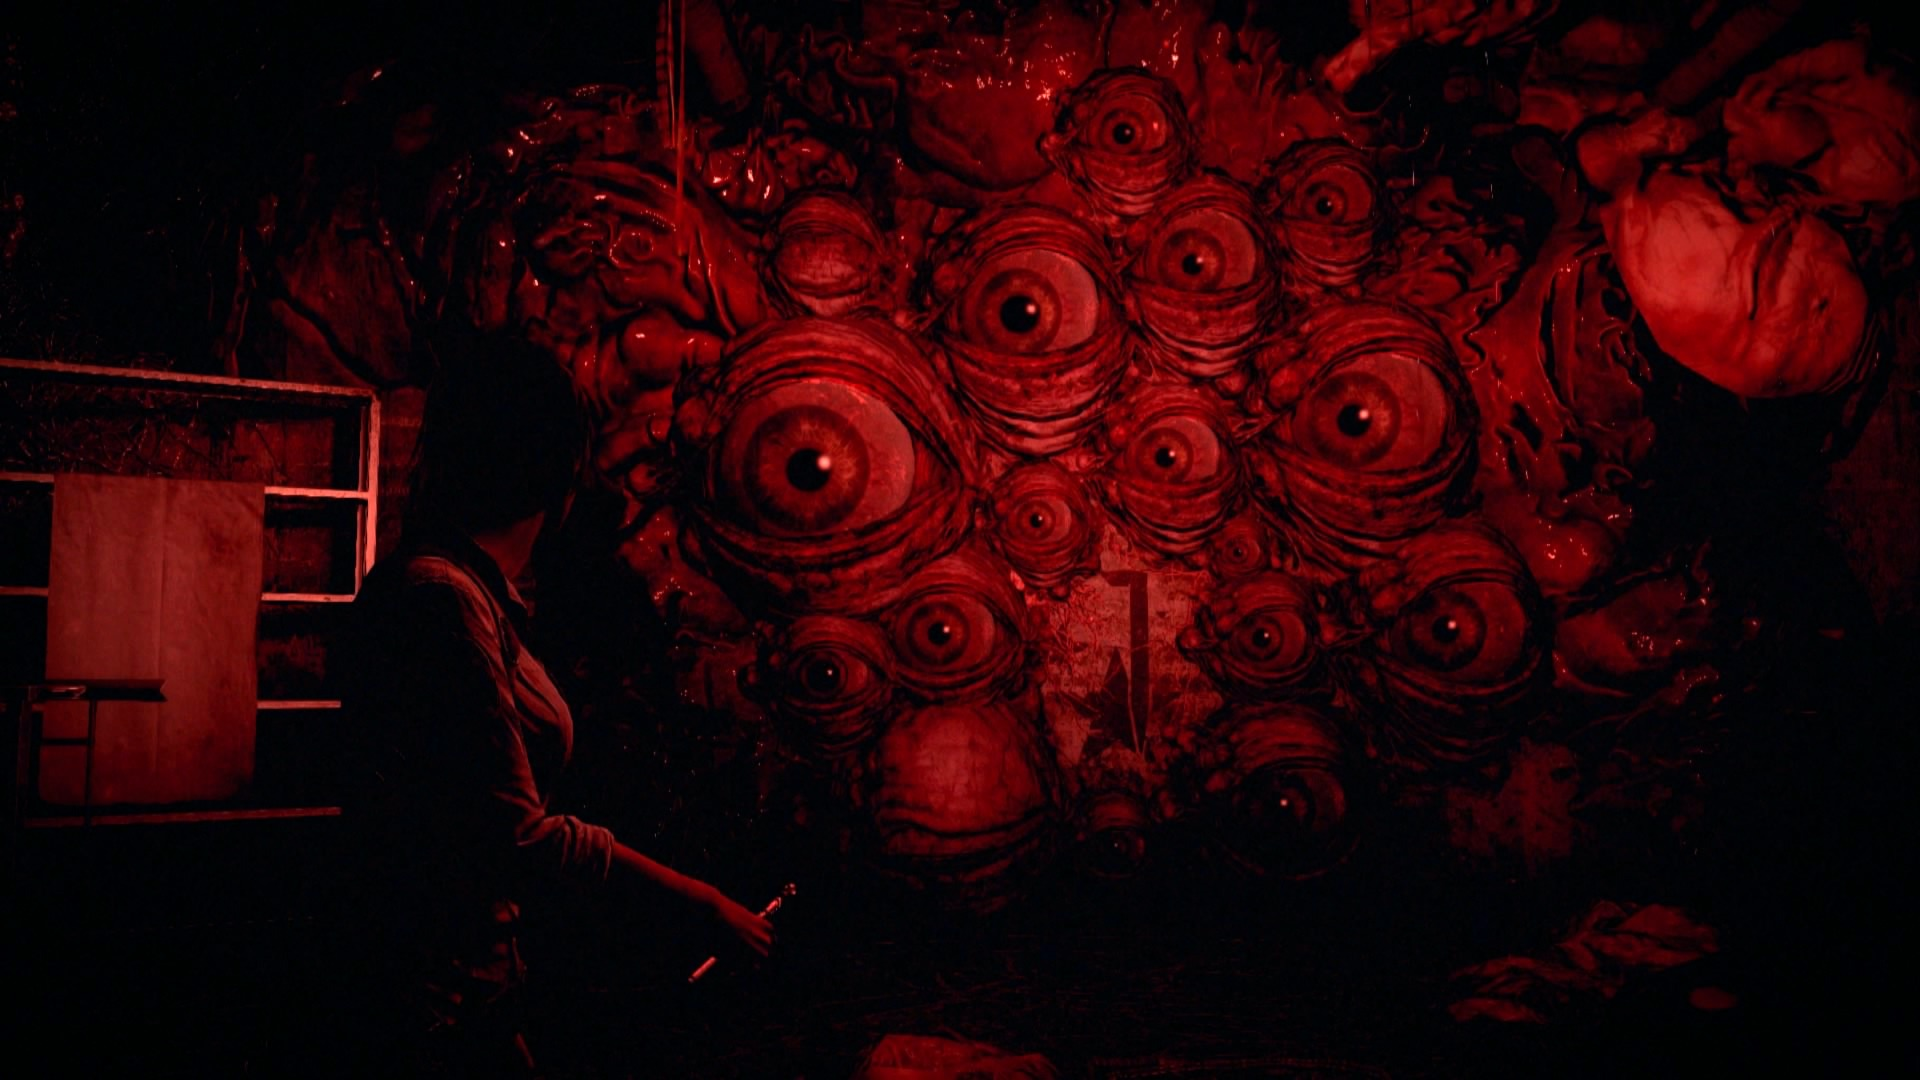 The-Evil-Within-20180731233850.jpg